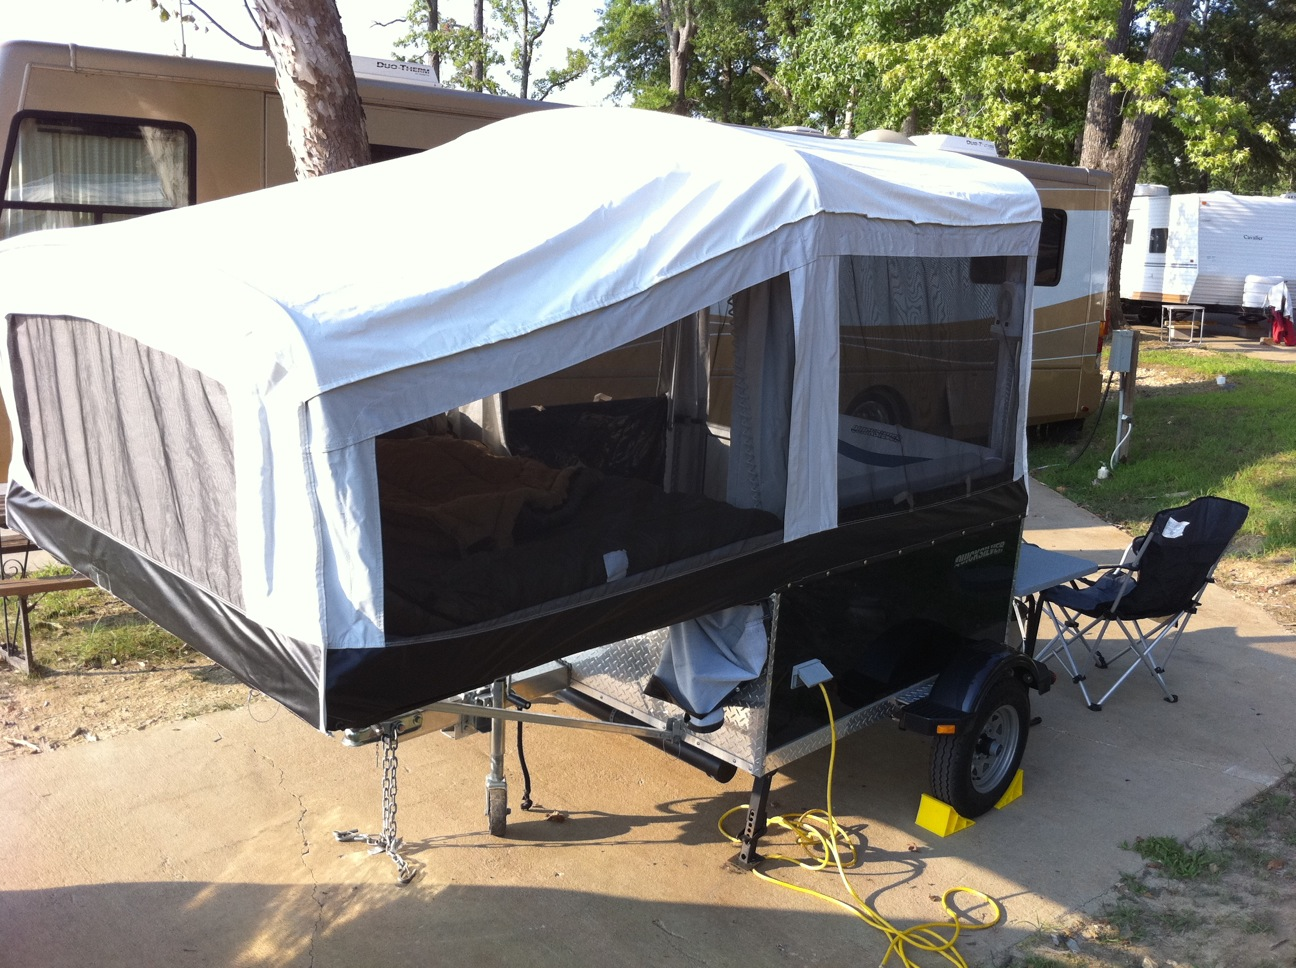 Livin'Lite 5 0 with custom sewn awning and vestibule